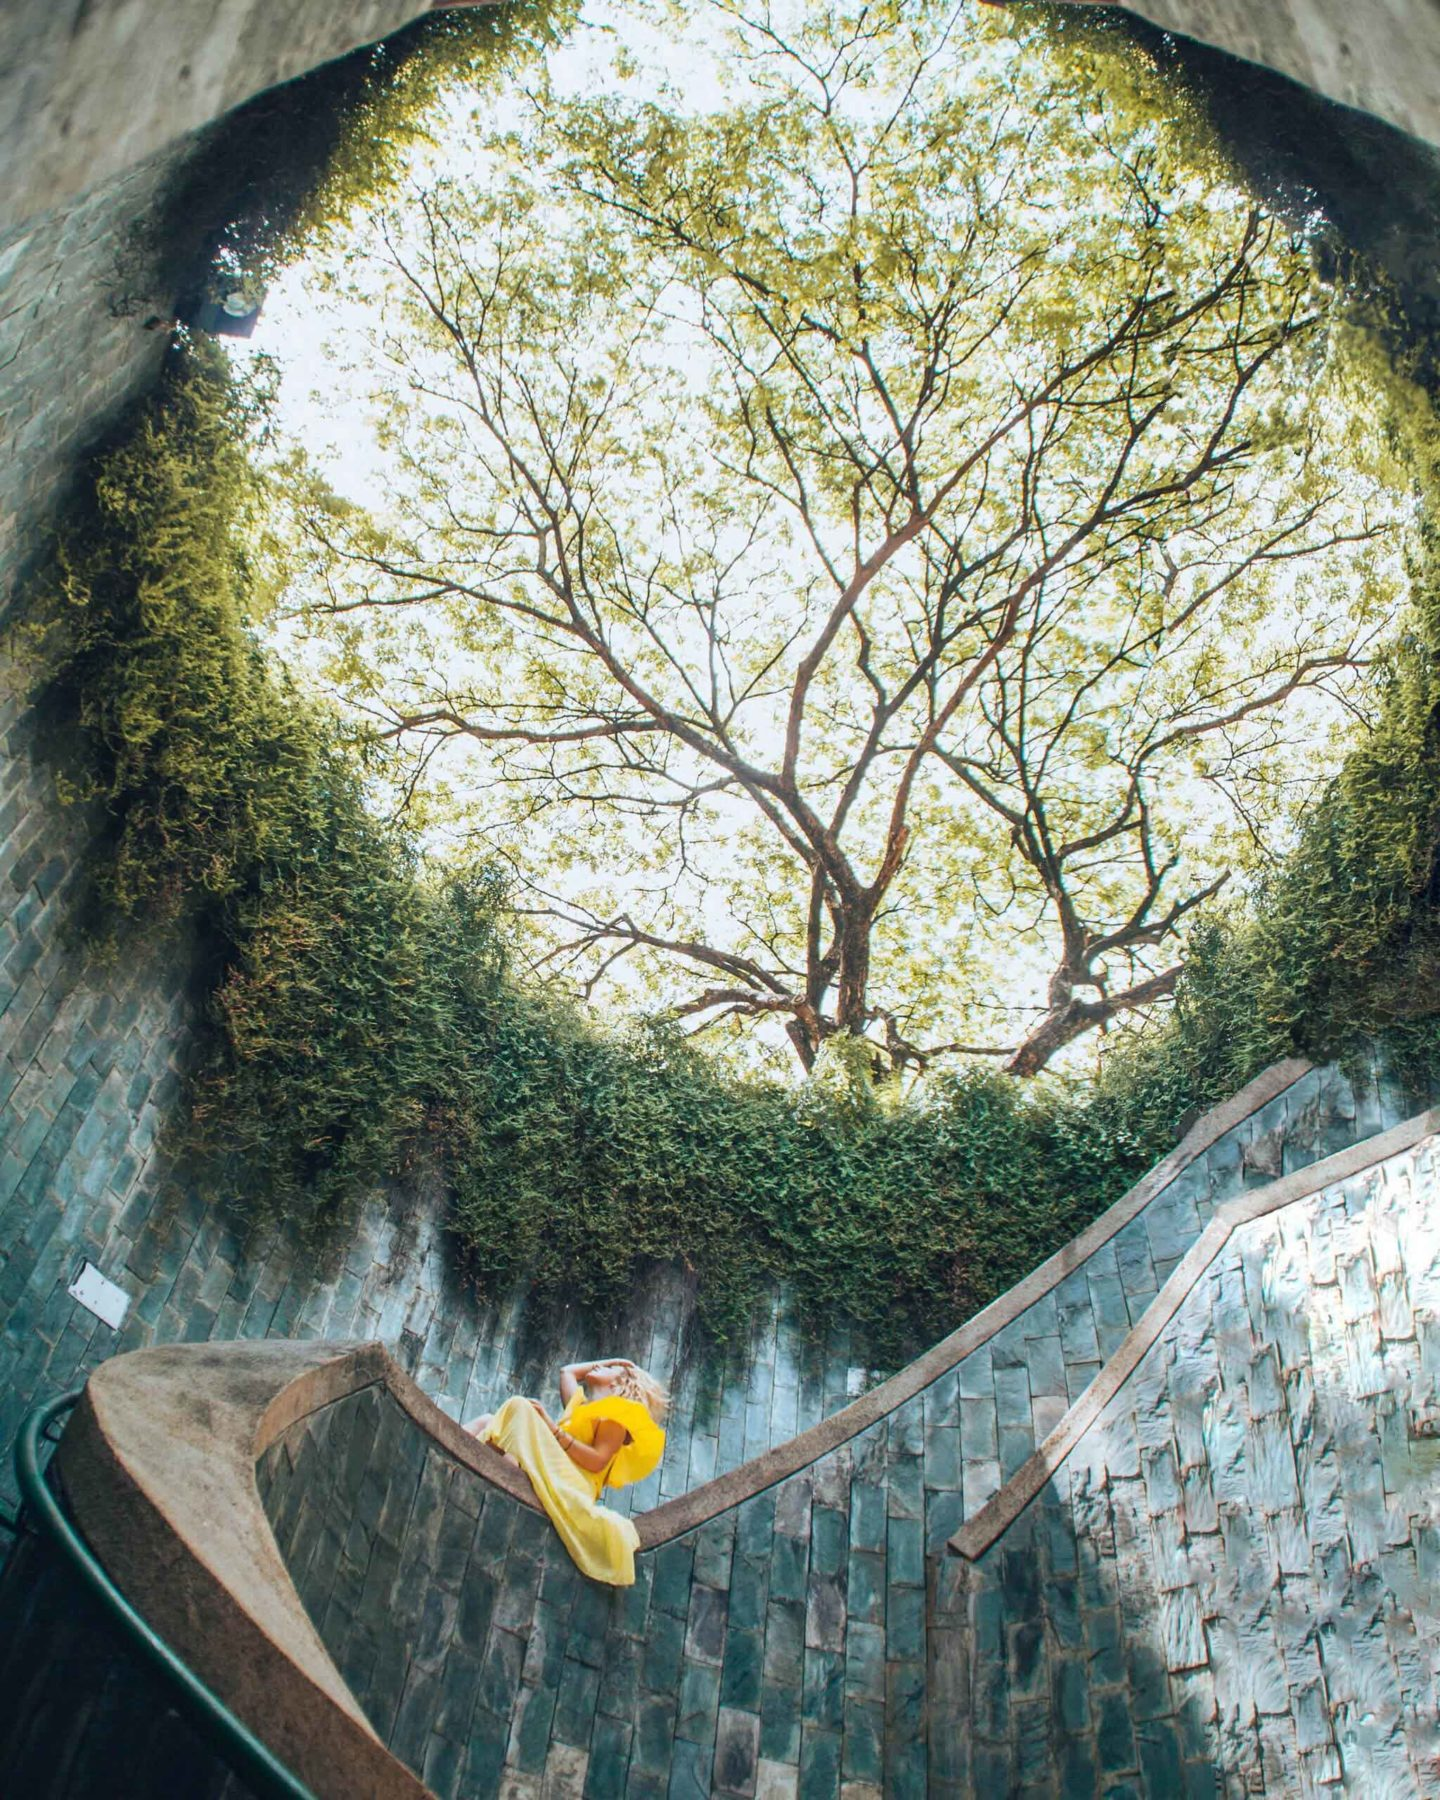 Fort Canning Park spiral staircase, instagrammable spot in Singapore